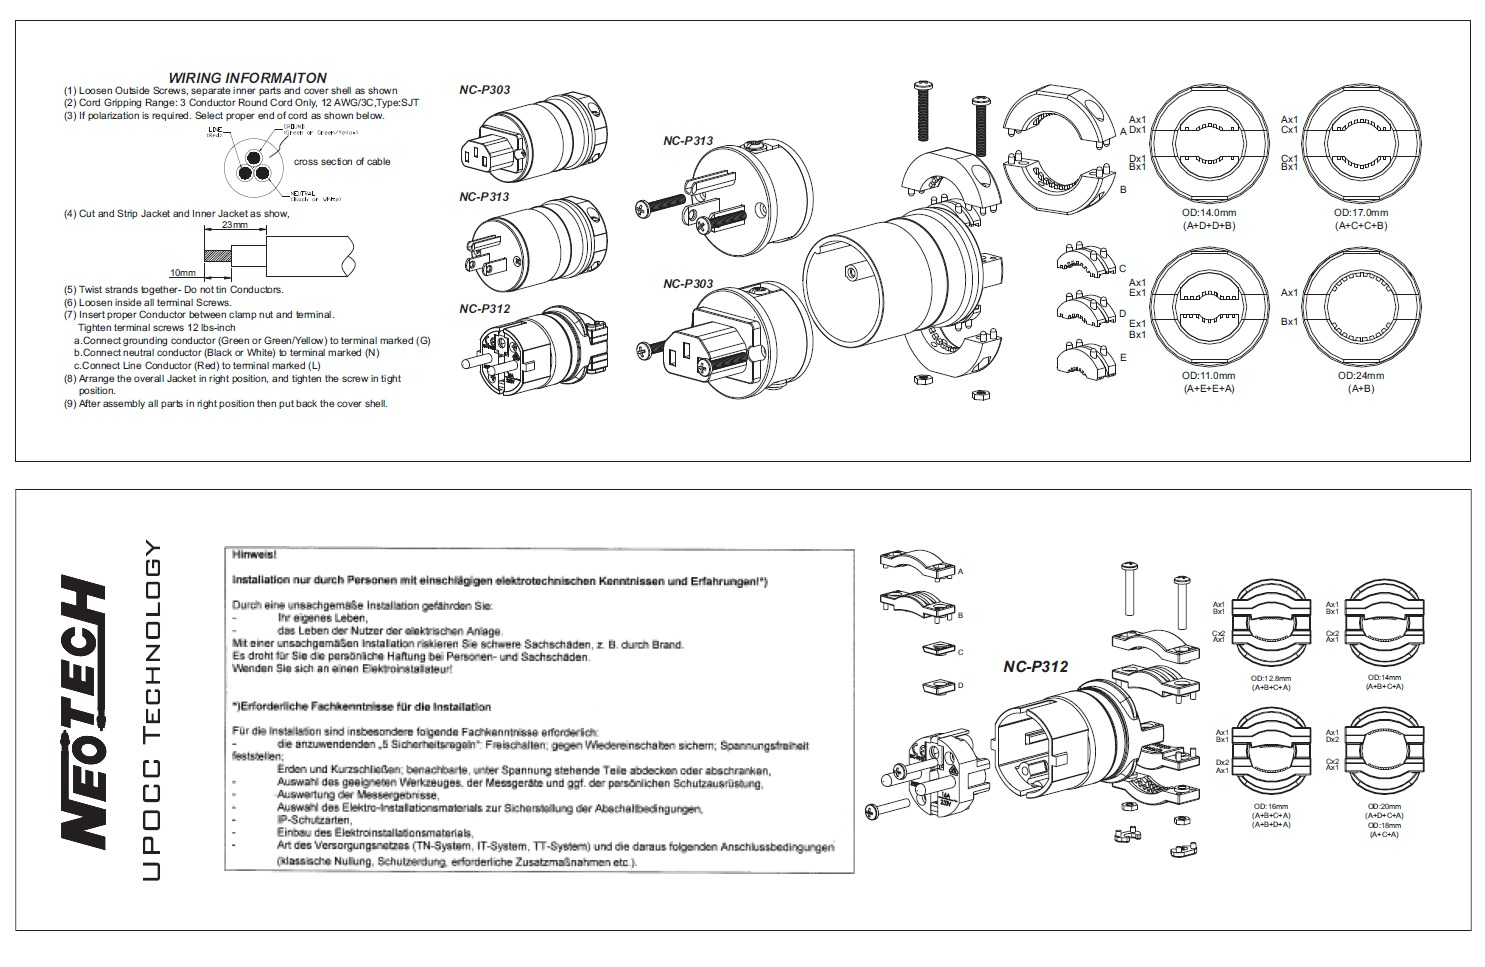 neotech nc p303 wiring diagram neotech nc p303, up occ copper iec plug, gold plated hifi collective iec plug wiring diagram at virtualis.co